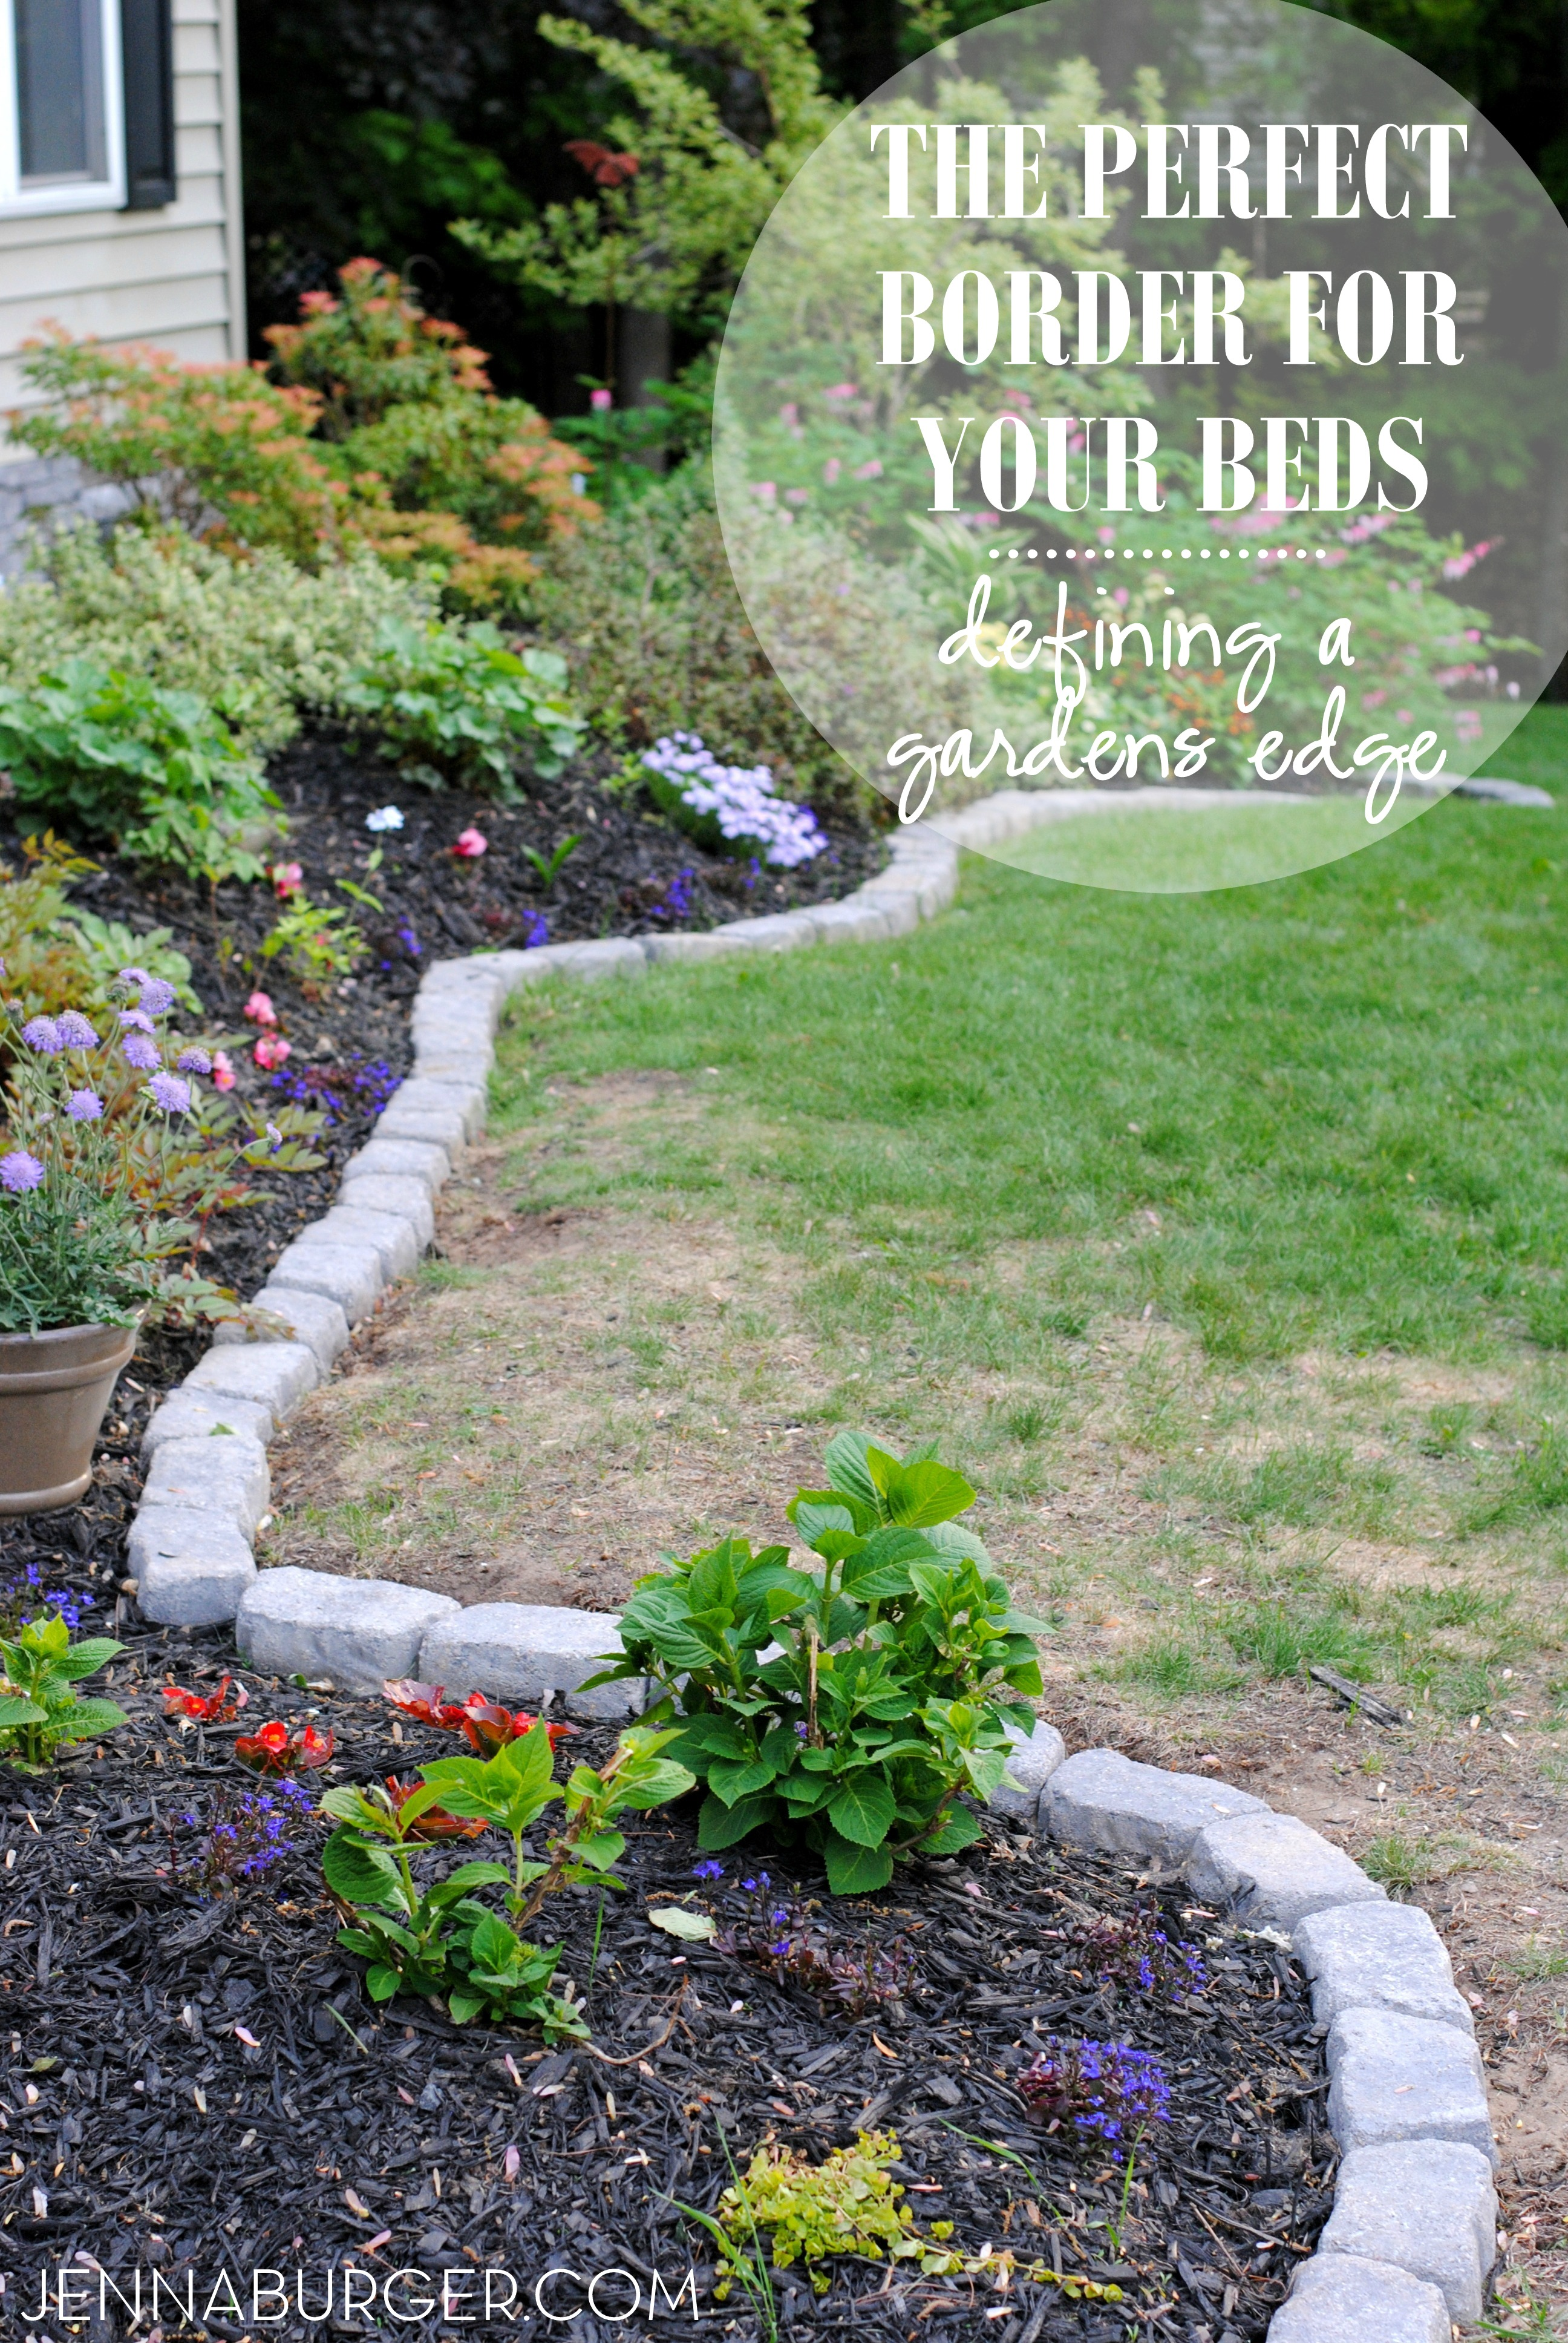 Delicieux The Perfect Border For Your Beds: Defining A Gardens Edge With Inexpensive  Stone That Fit